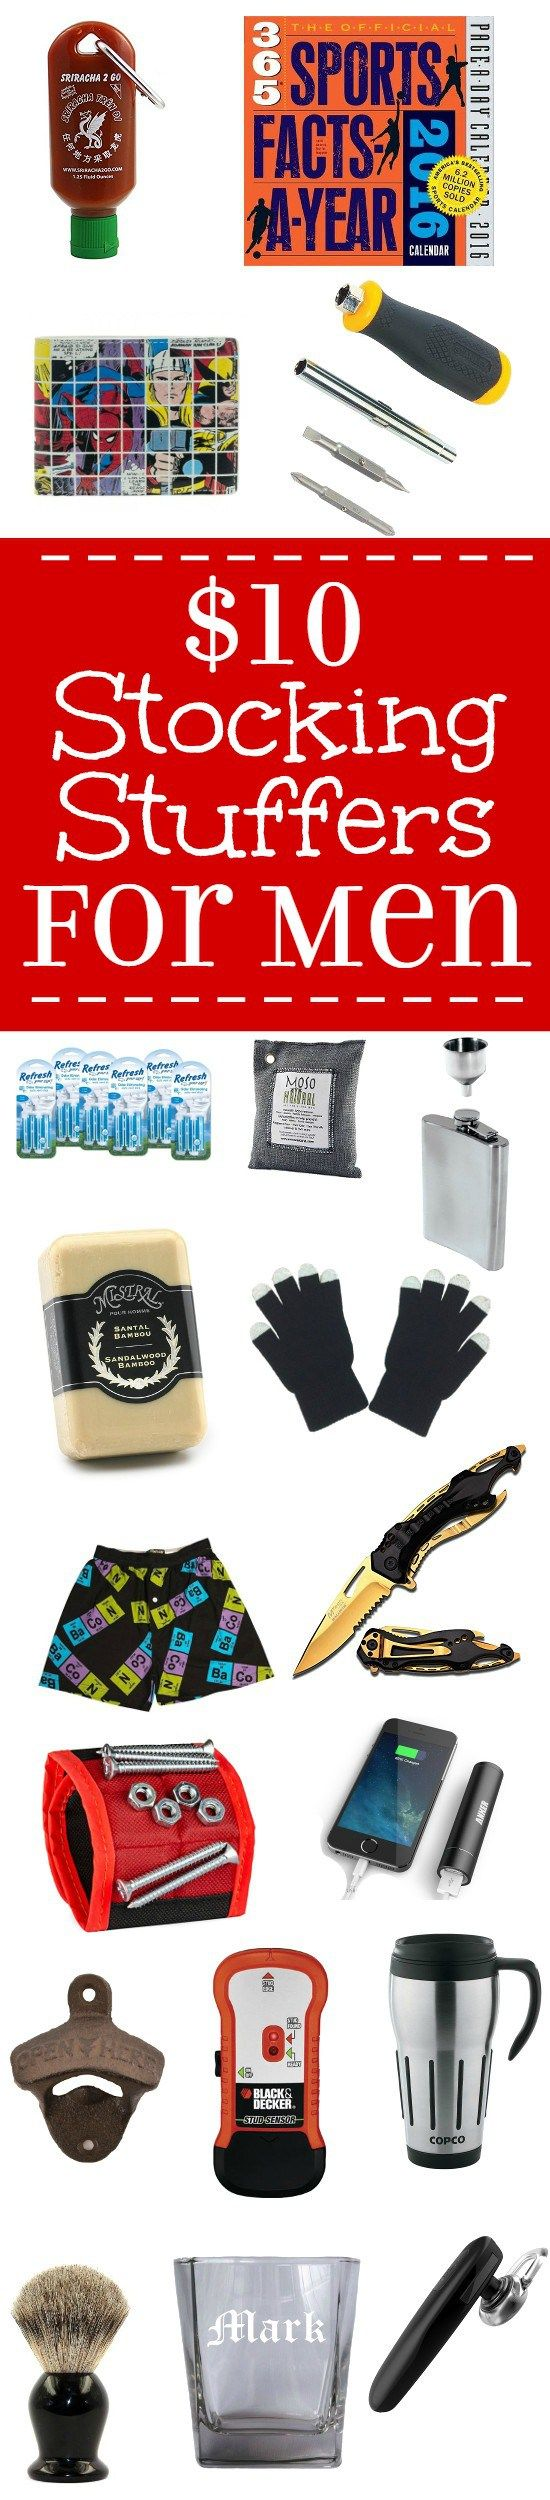 Christmas Gifts And Stocking Stuffers Ideas For Men 25